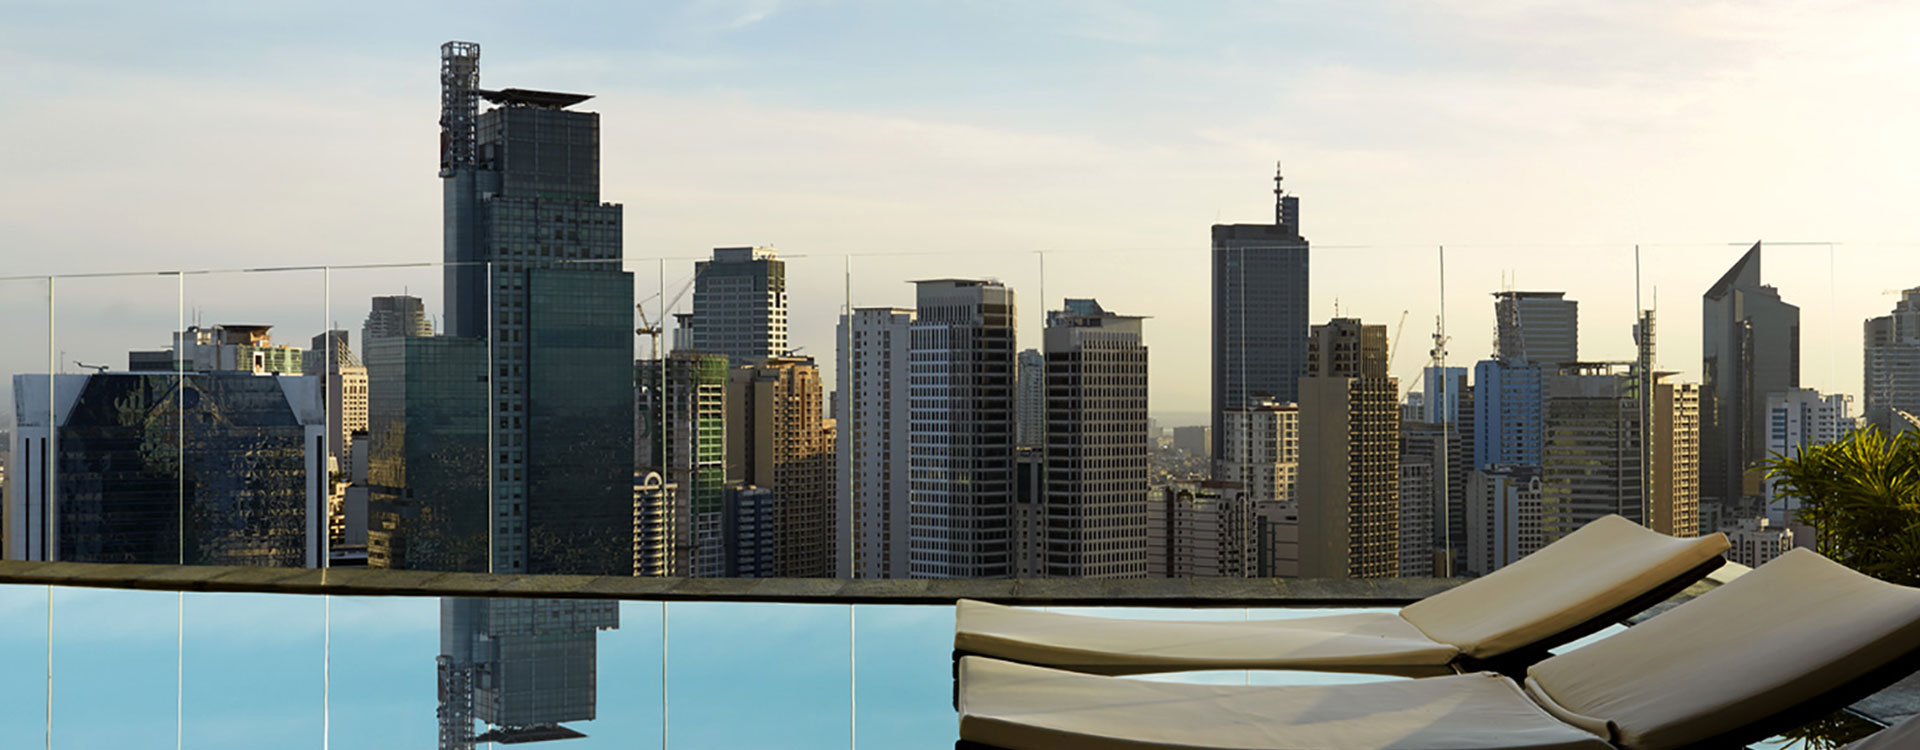 real estate philippines gramercy residences infinity pool